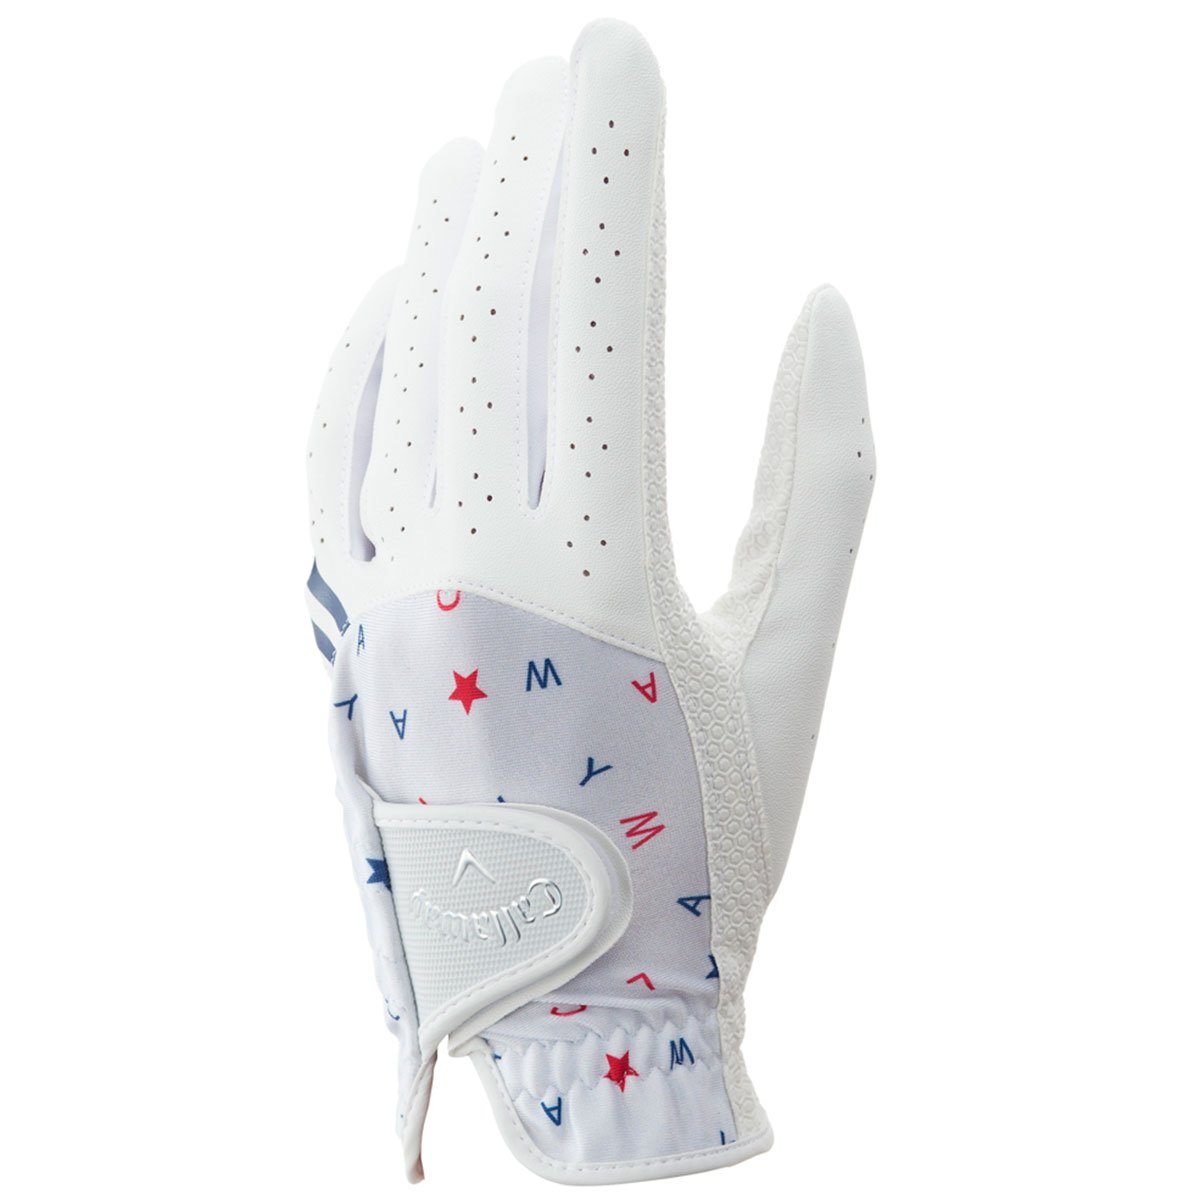 Callaway Golf Japan Exclusive Chev Dual Women's Golf Gloves, Pair, White, Small (18cm)